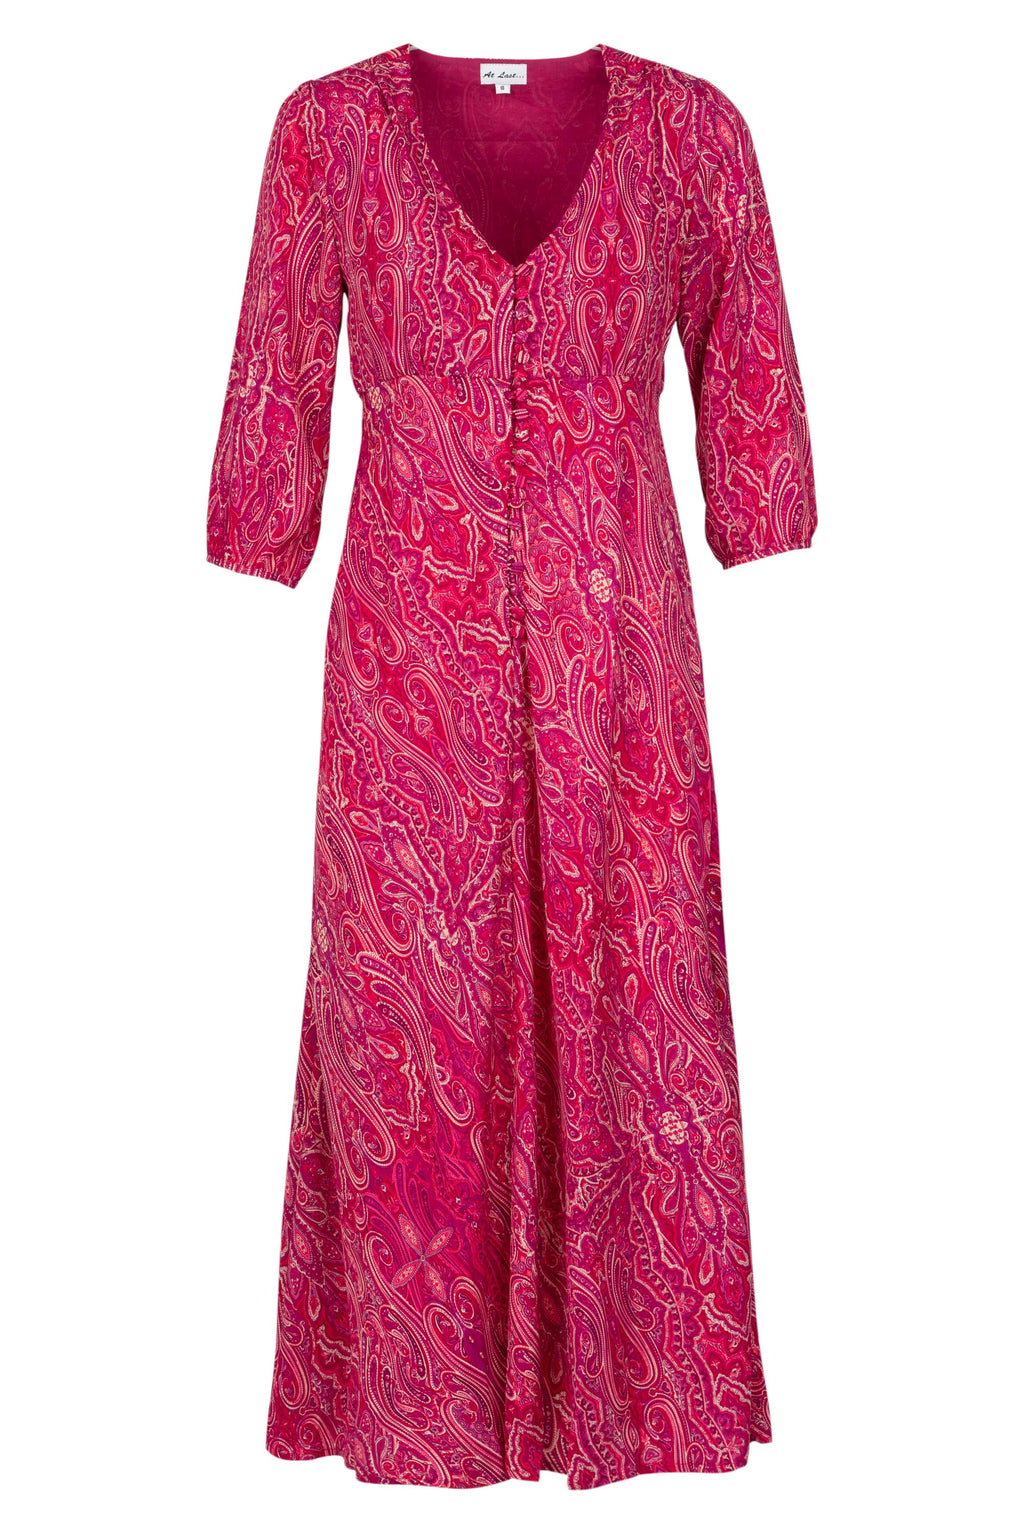 (COMING SOON) Belgravia Dress - Pink Paisley AH45